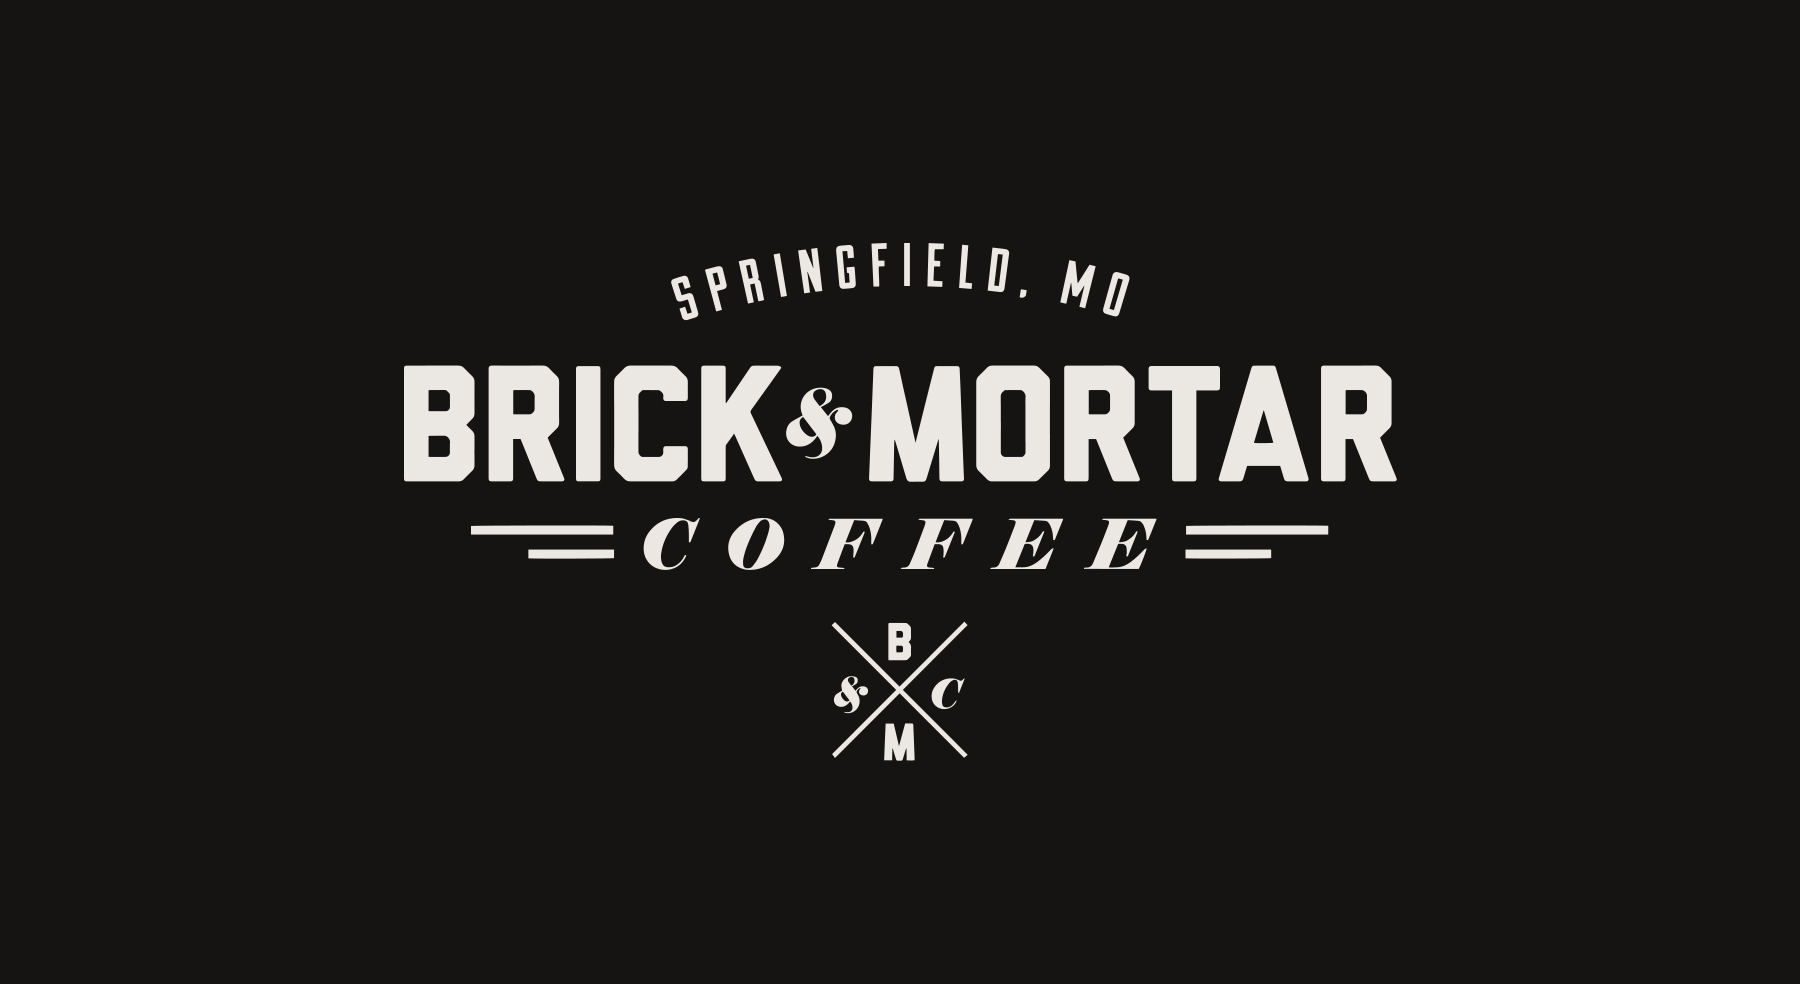 Brick & Mortar Coffee Branding